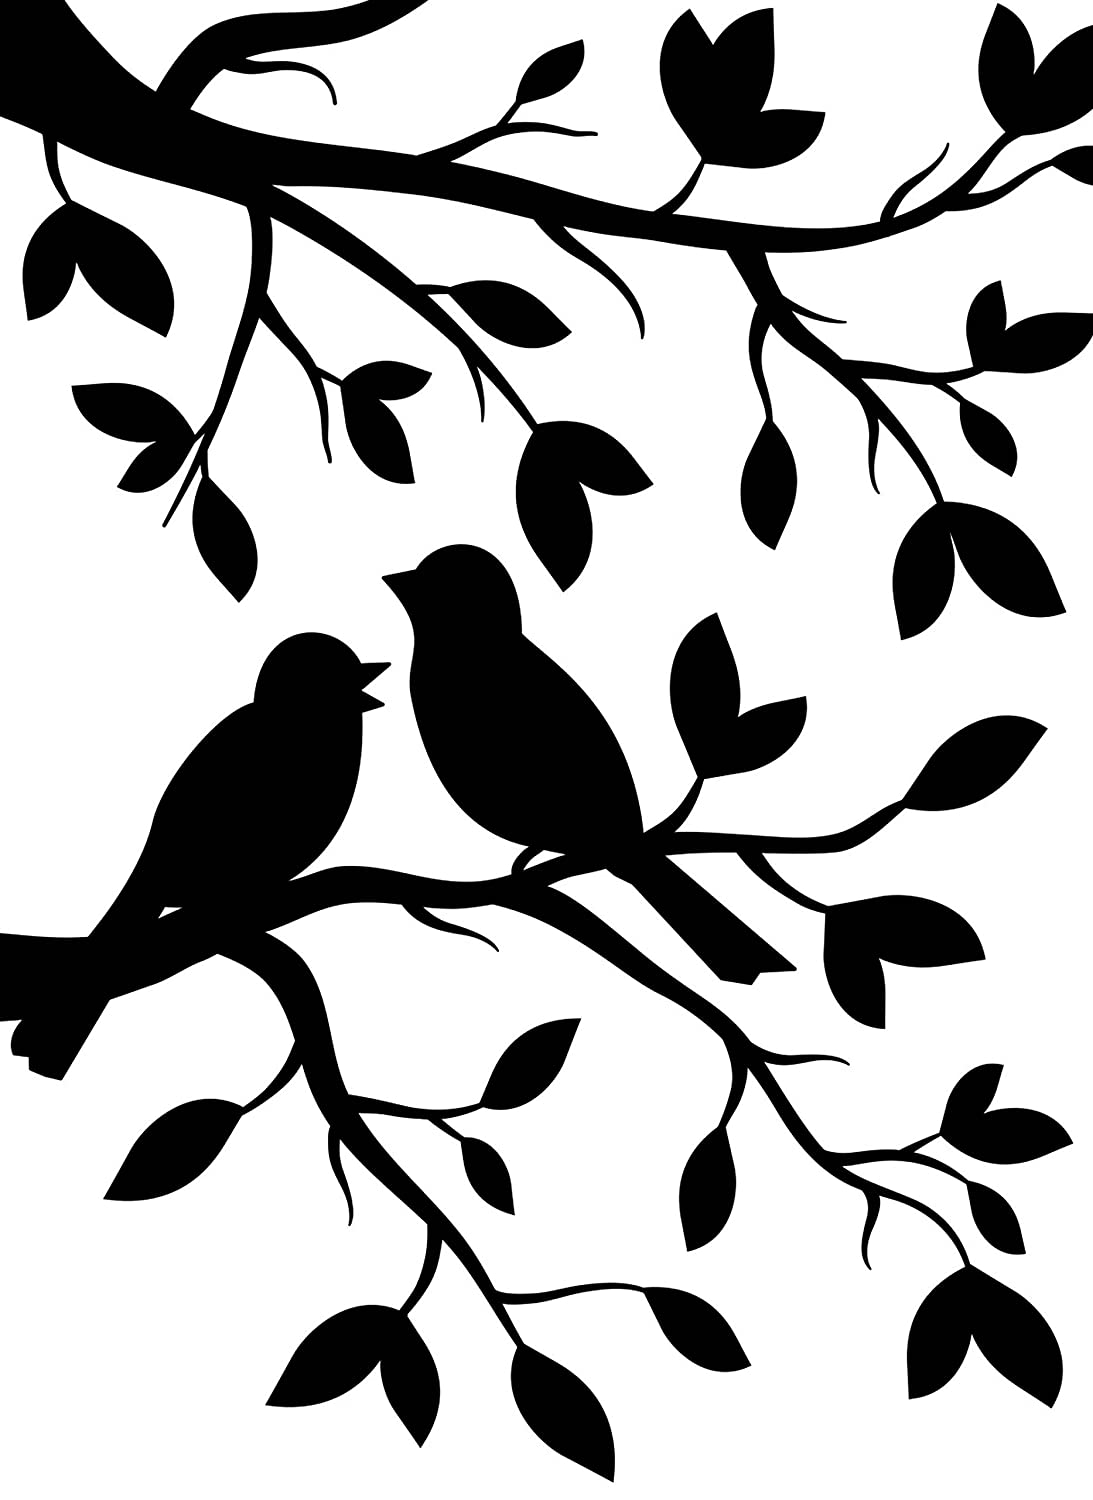 Darice Birds Branch Embossing Template, Transparent, 10.8 x 14.6 cm EB12-19102